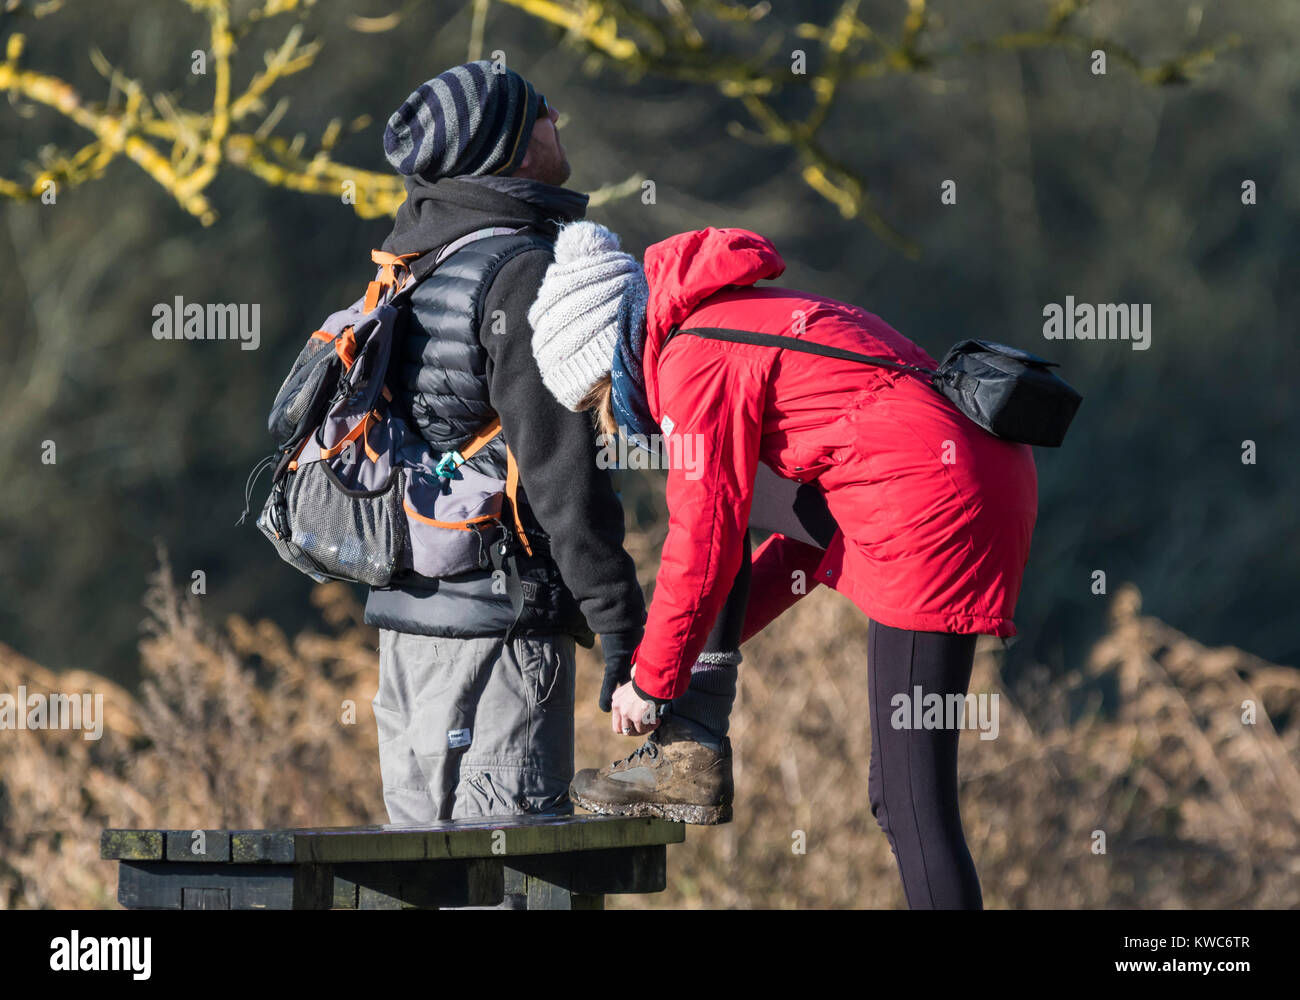 Woman stopping to tie walking boot shoe laces up after coming untied. - Stock Image